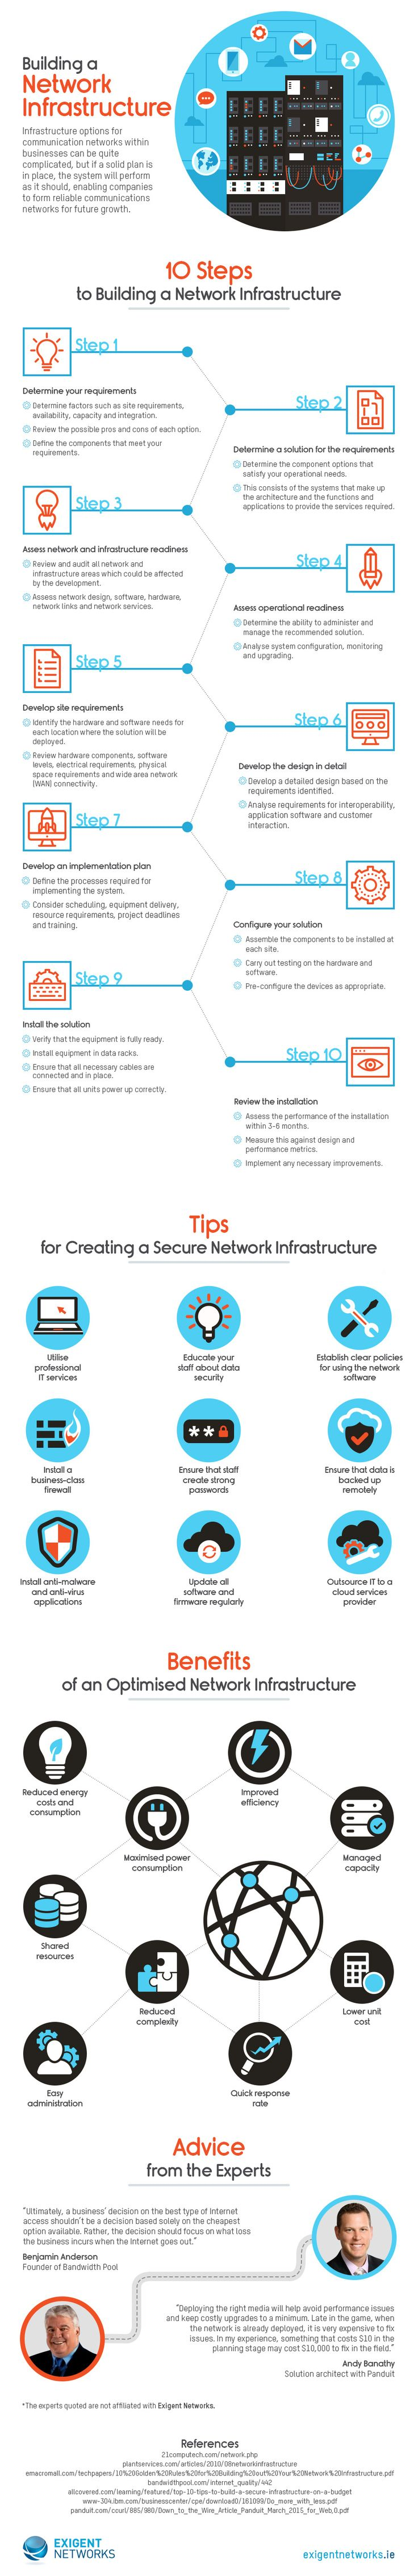 10 Tips for Building Your Network Infrastructure   33rd Square